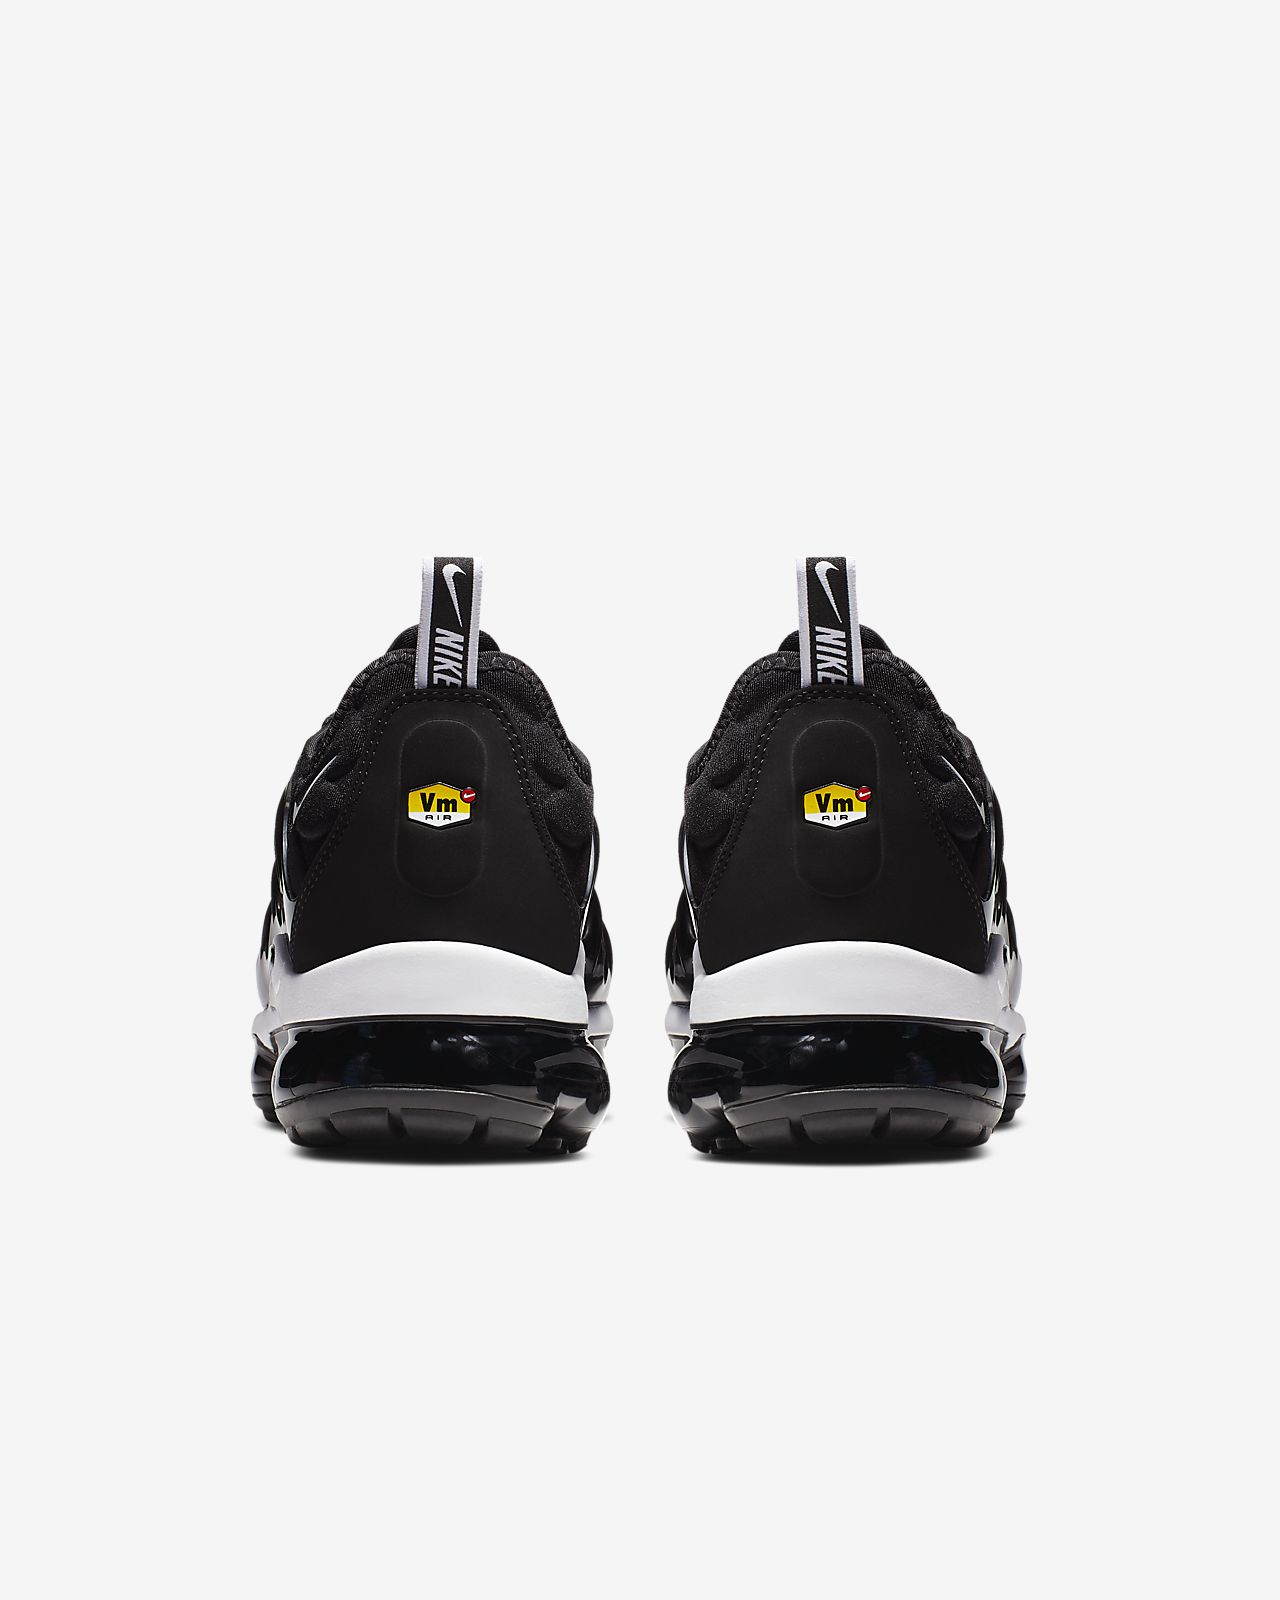 7fdee6054a441 Nike Air VaporMax Plus Men s Shoe. Nike.com GB